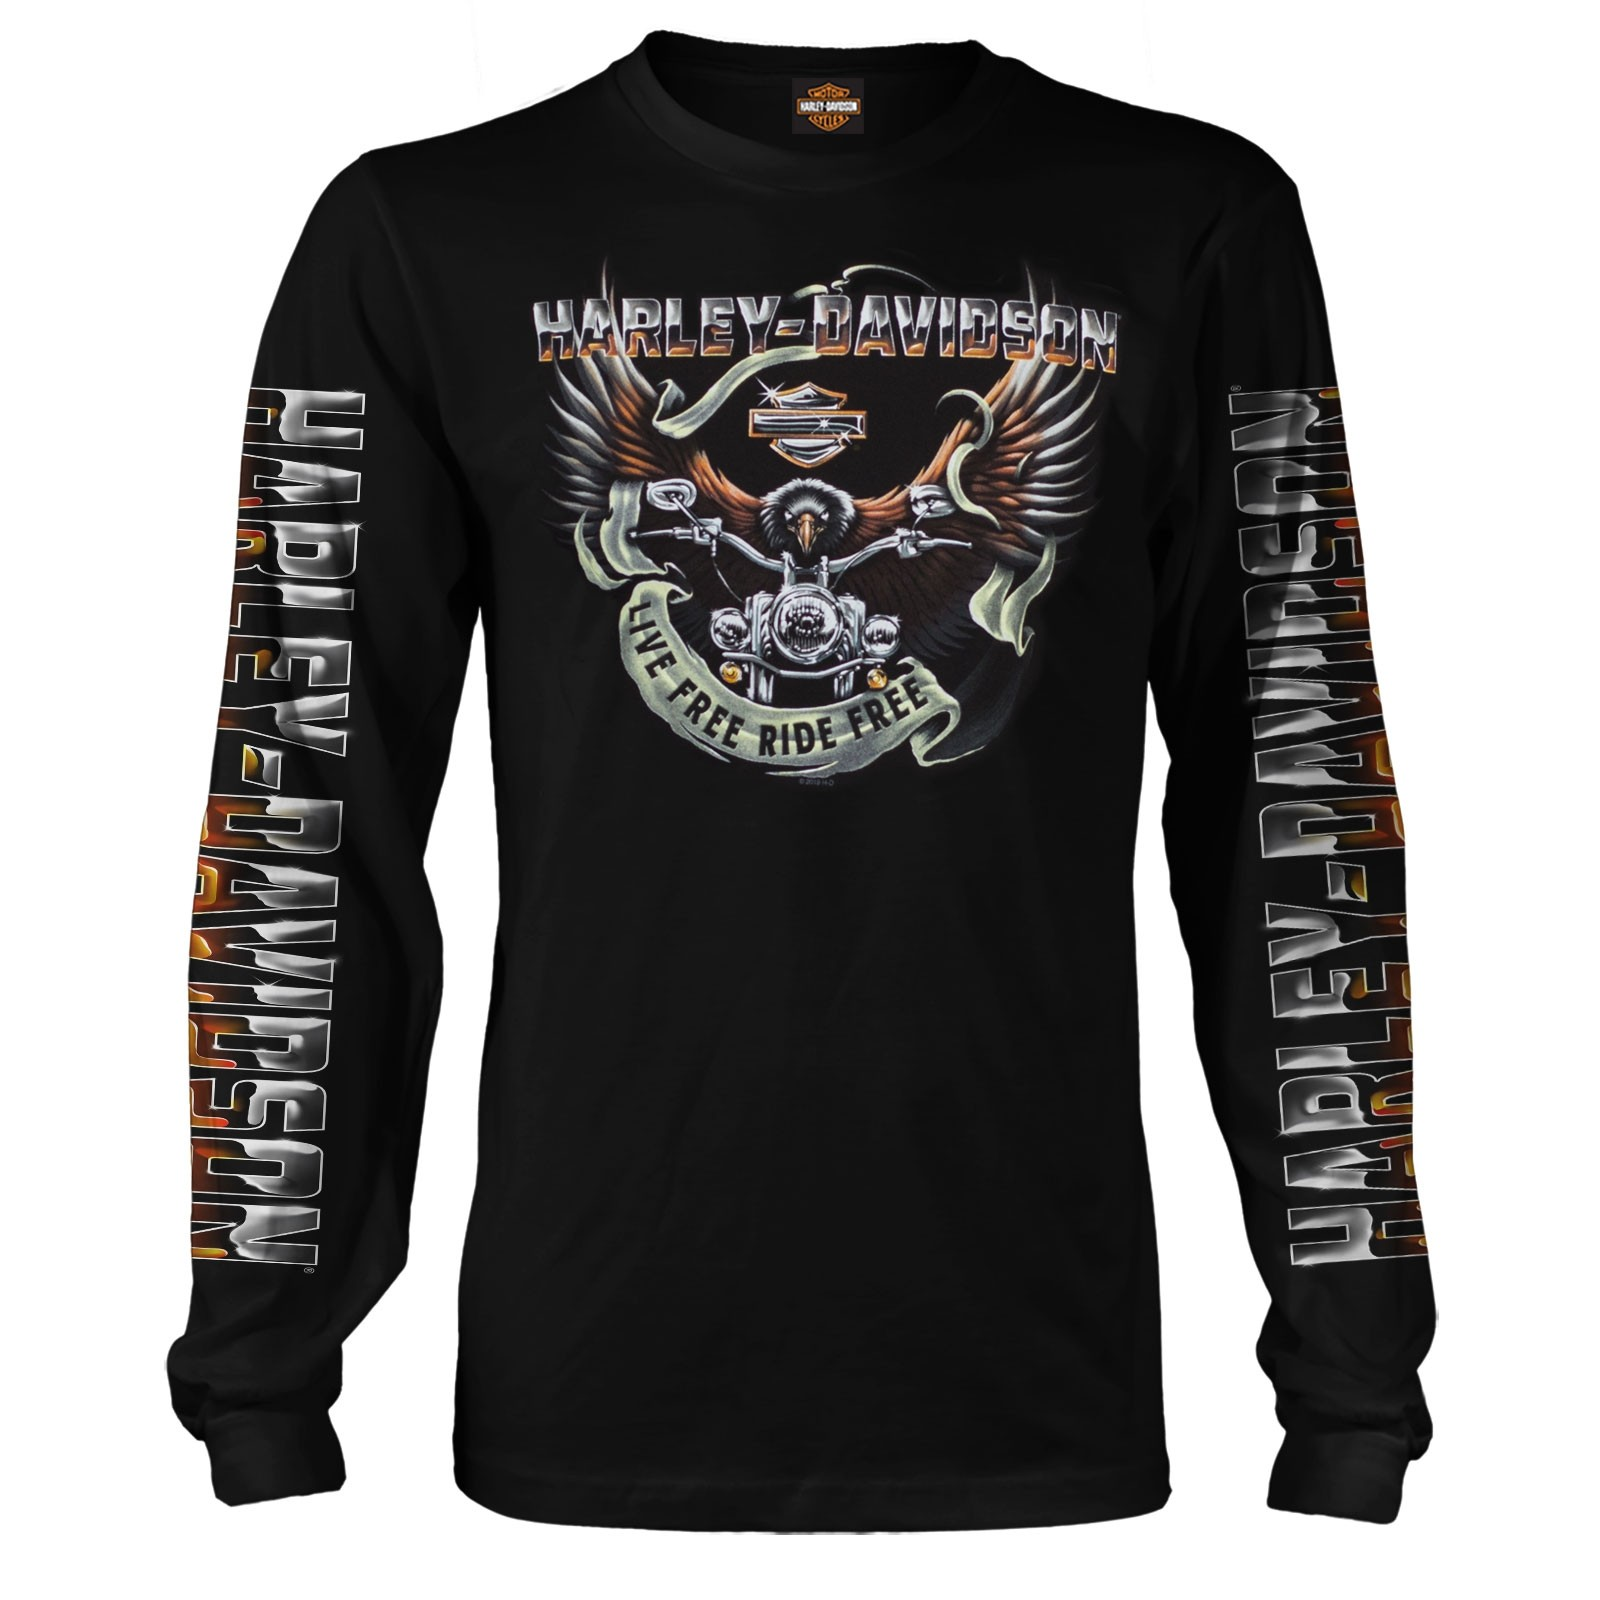 Men's Black Long-Sleeve Eagle Graphic T-Shirt - Kadena Air Base | Eagle Ride